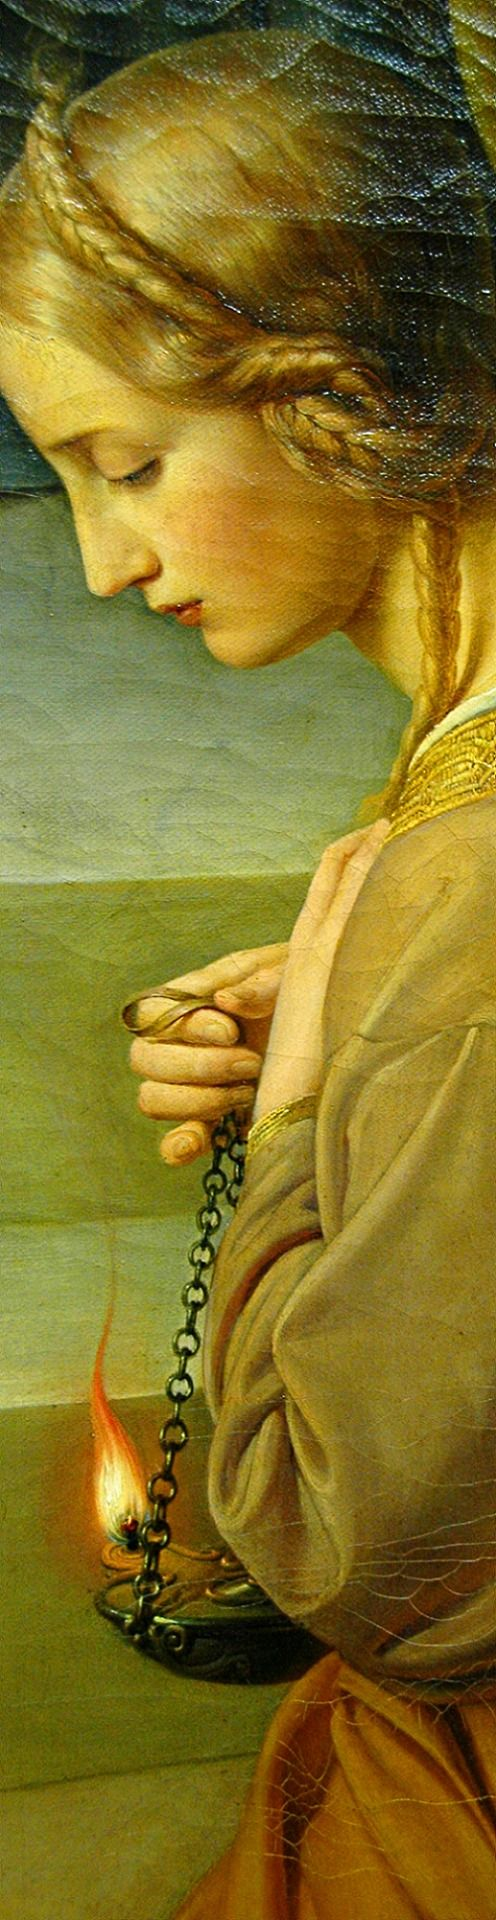 The Parable of the Wise and Foolish Virgins (detail) 1838-42 Friedrich Wilhelm Schadow